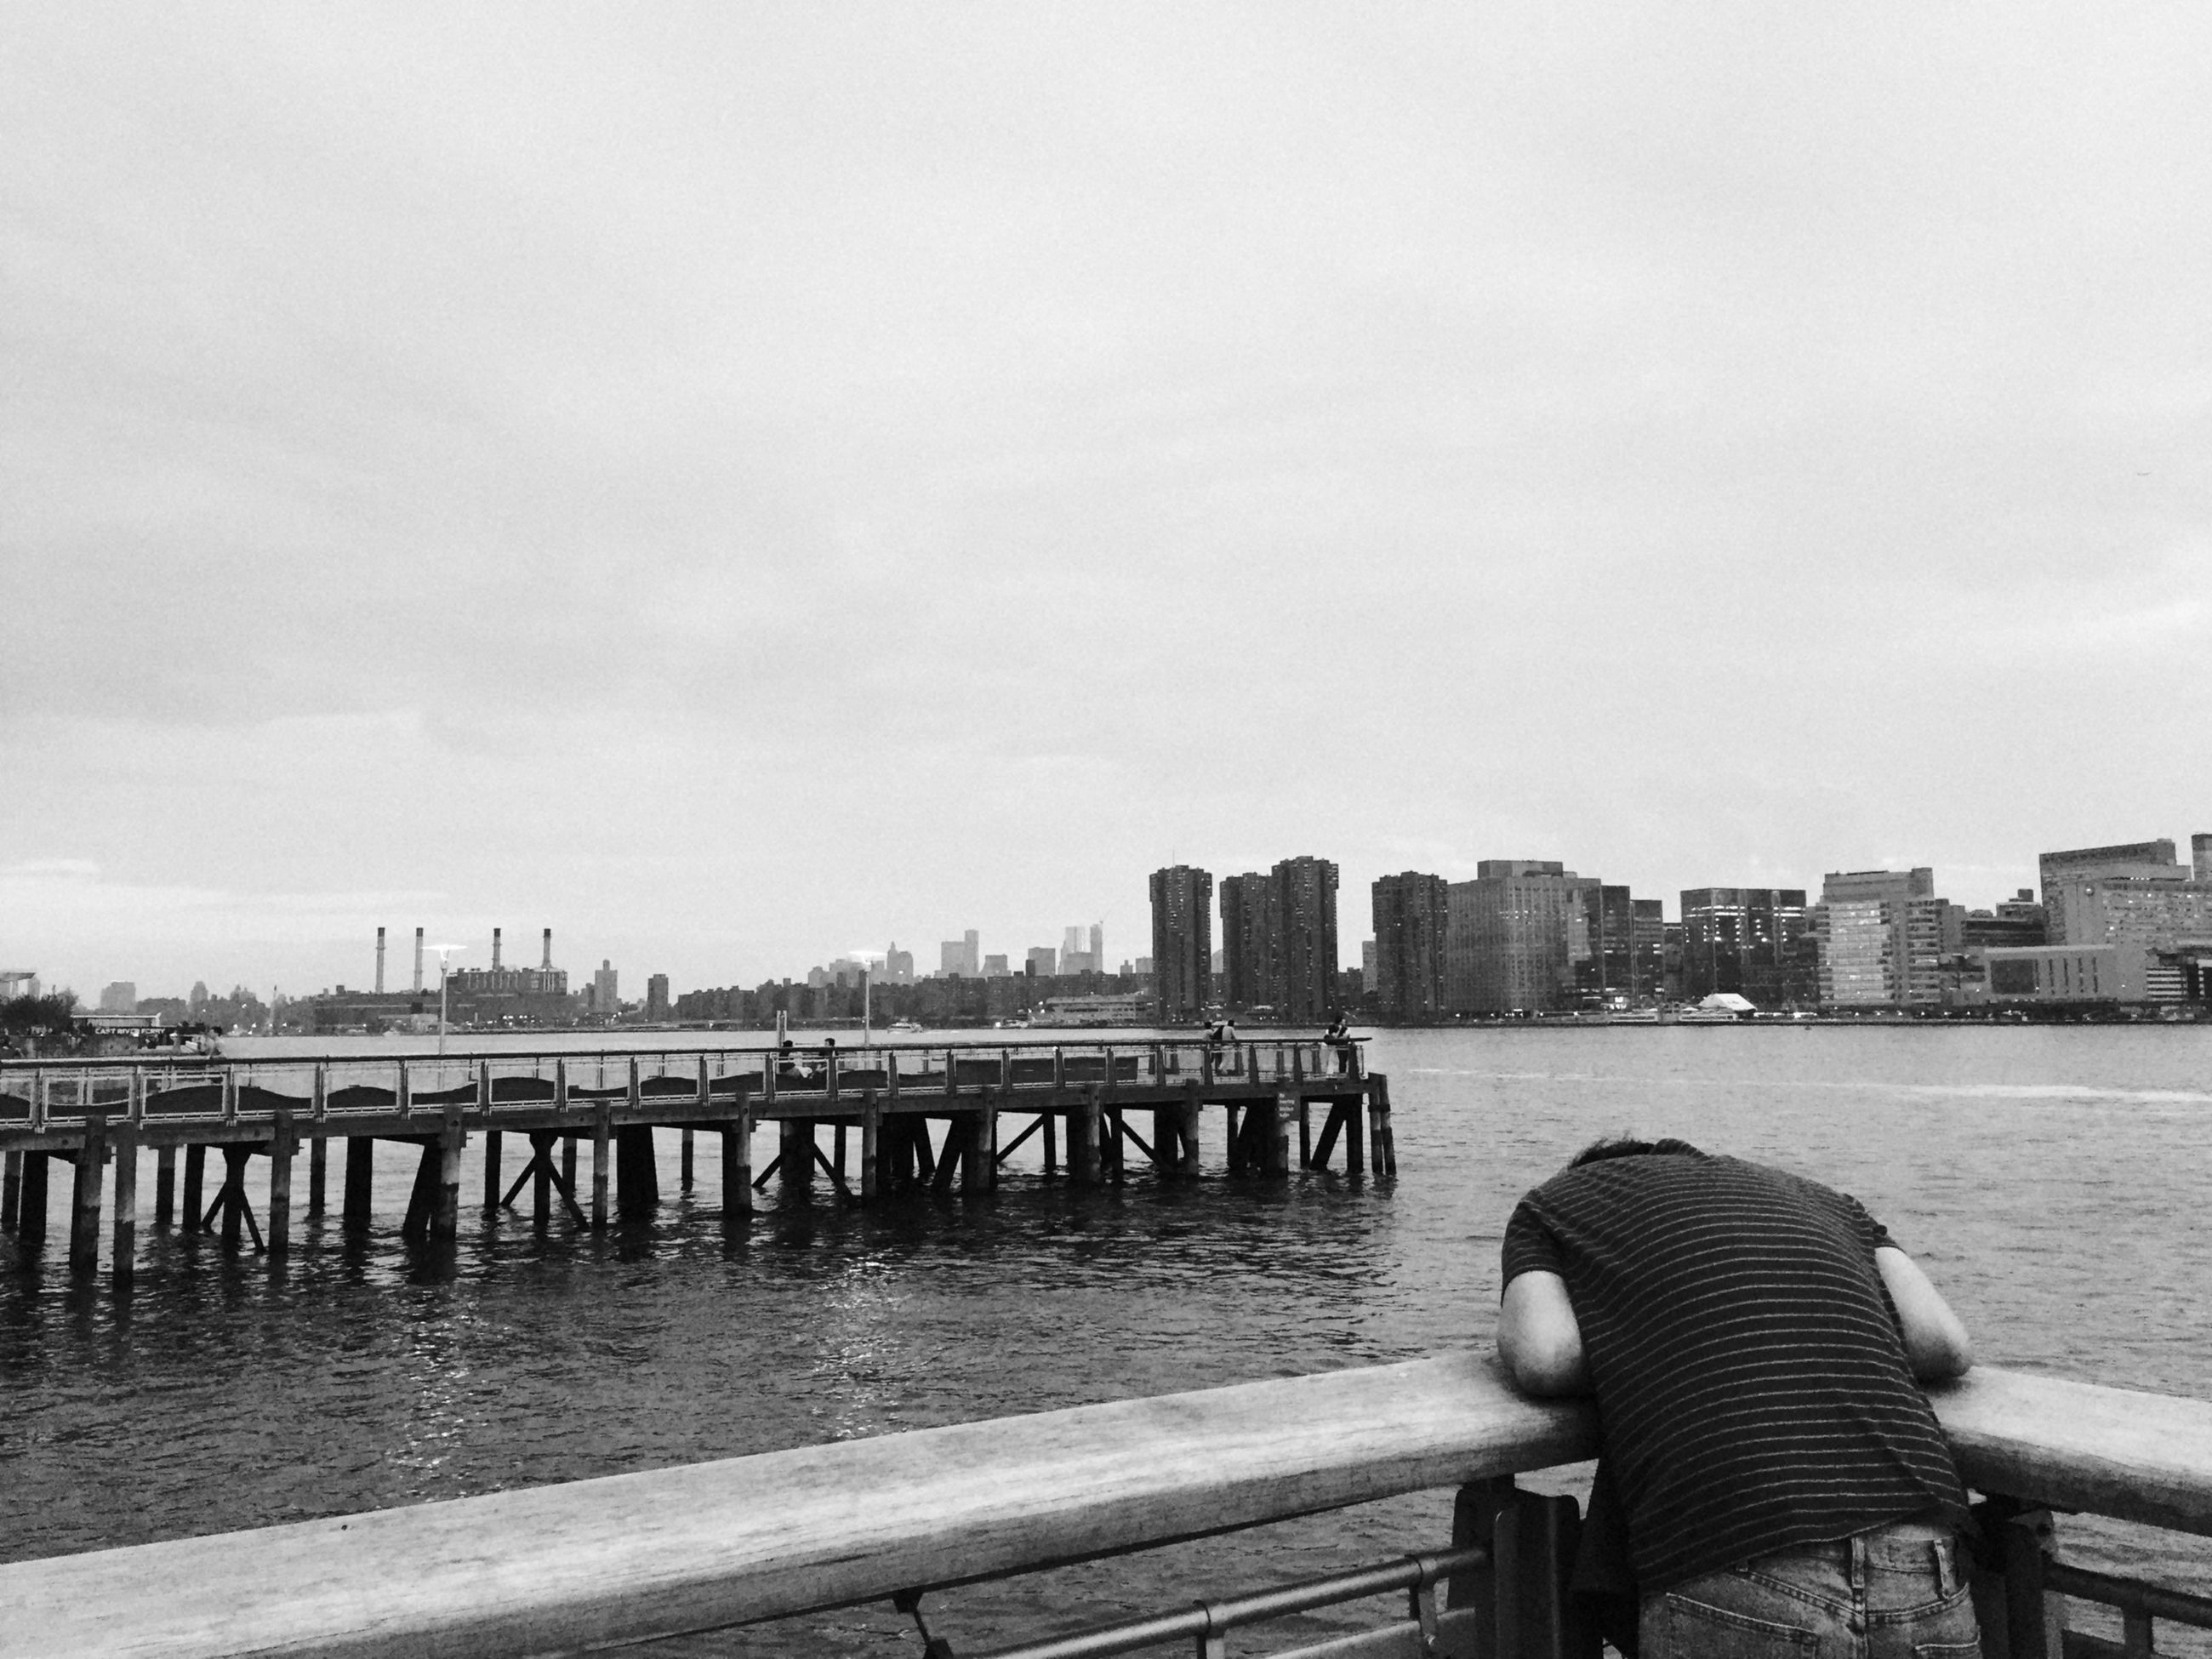 Rear view of man leaning on railing by river in city against clear sky